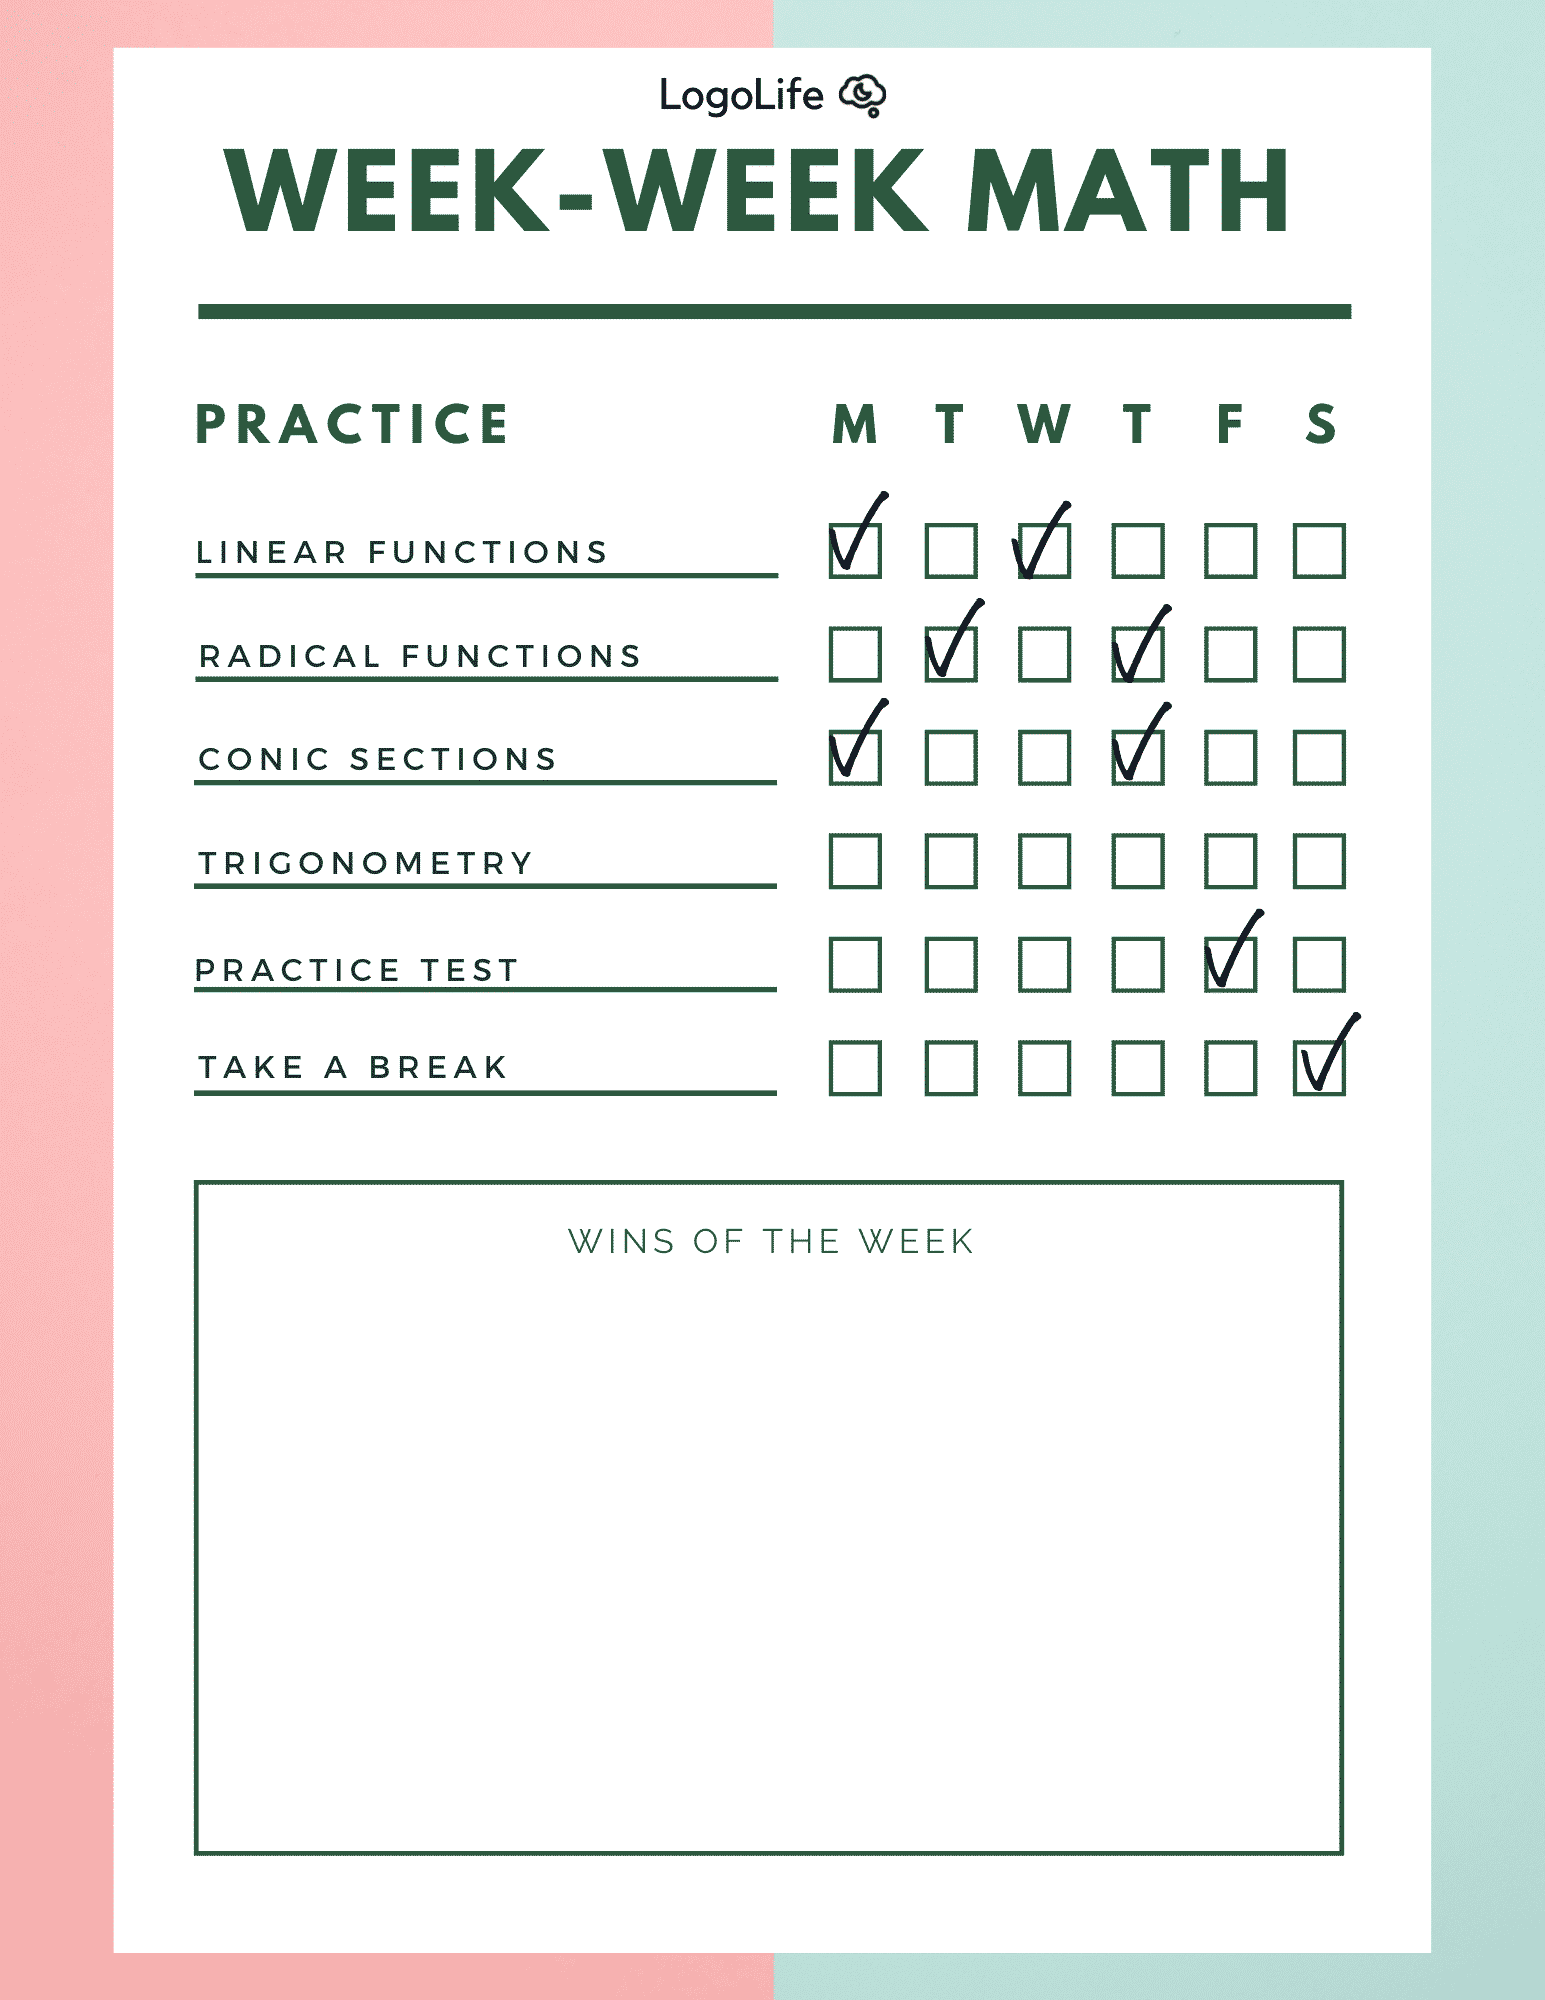 Weekly Planner Example 3 - LogoLife.png